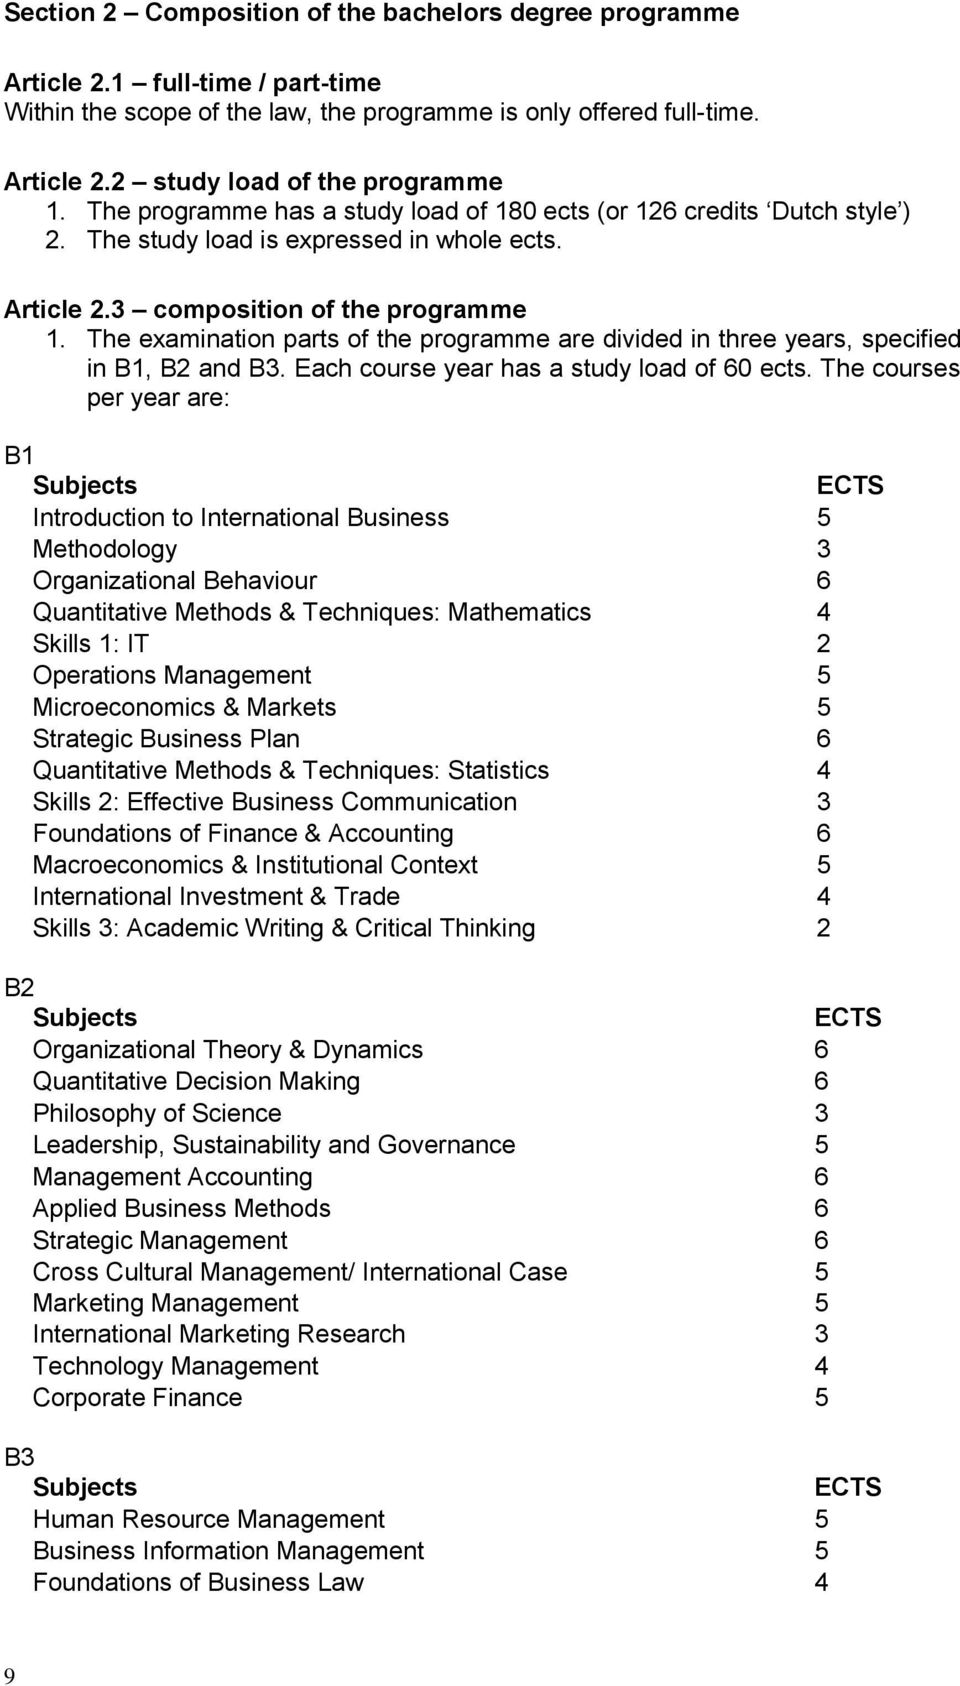 The examination parts of the programme are divided in three years, specified in B1, B2 and B3. Each course year has a study load of 60 ects.